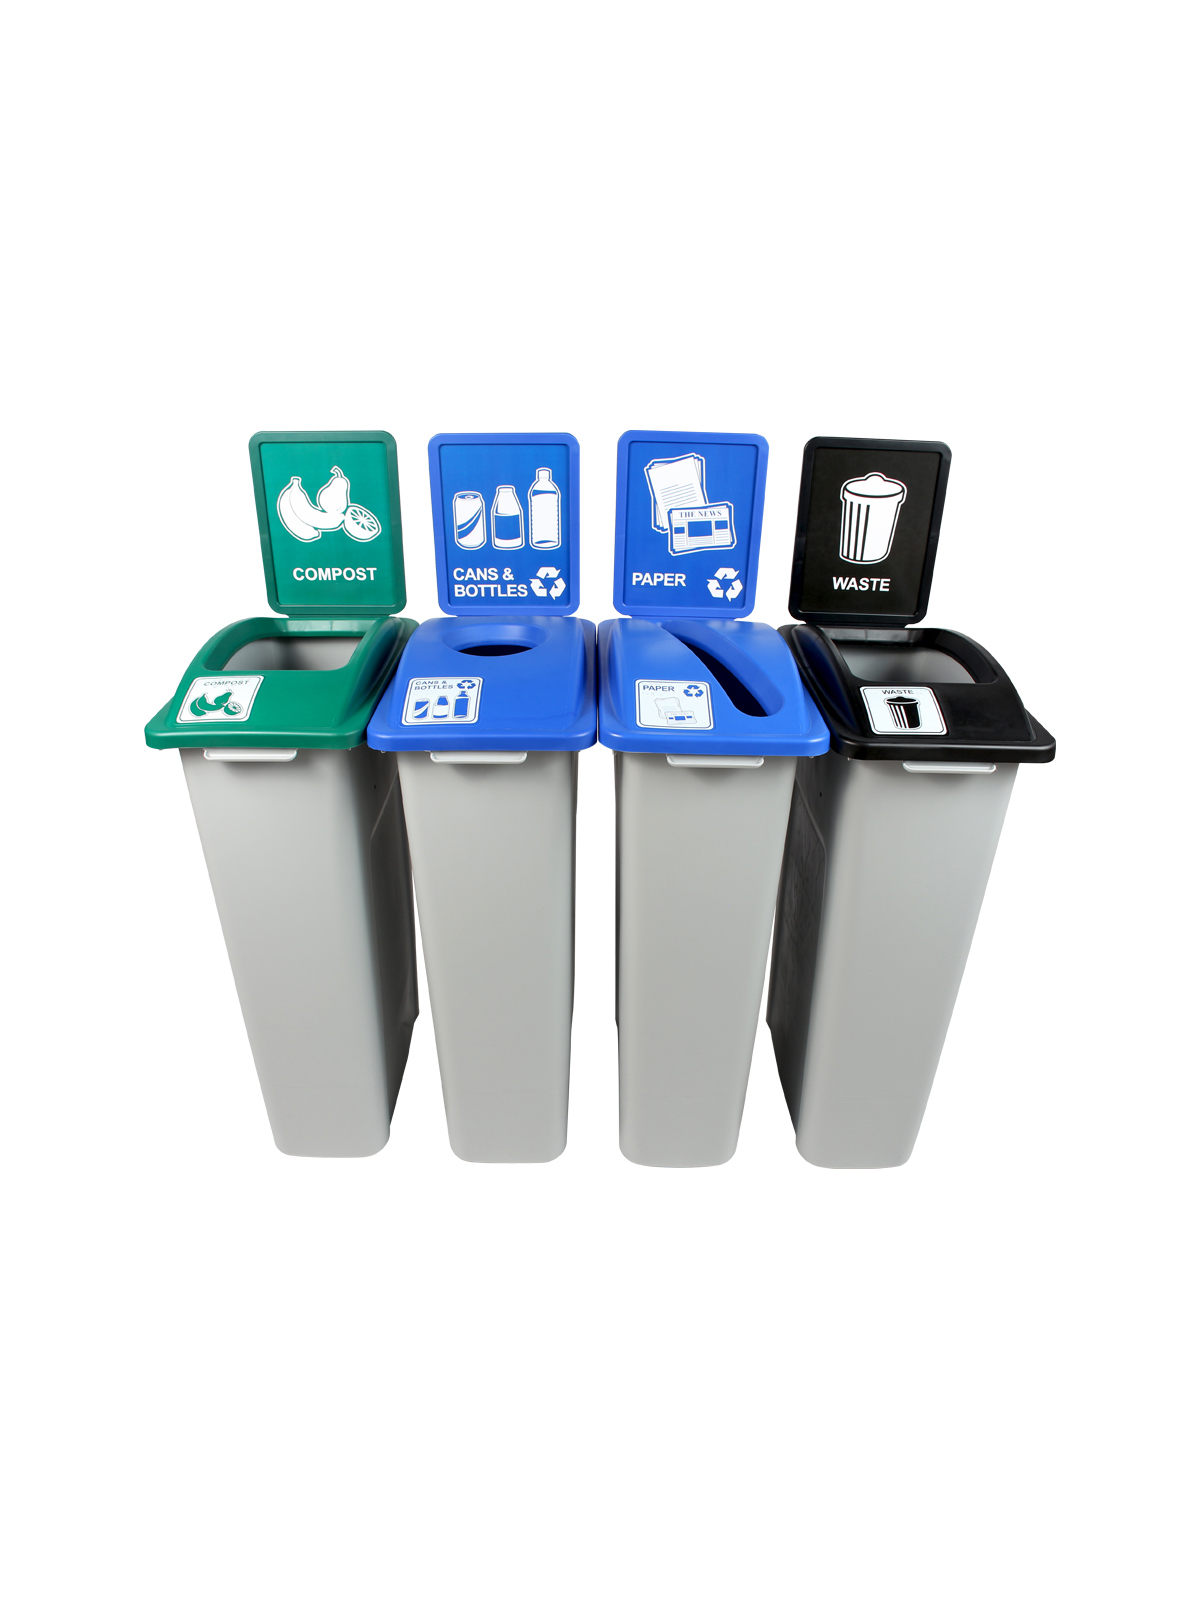 WASTE WATCHER - Quad - Cans & Bottles-Paper-Compost-Waste - Circle-Slot-Full - Grey-Blue-Blue-Green-Black